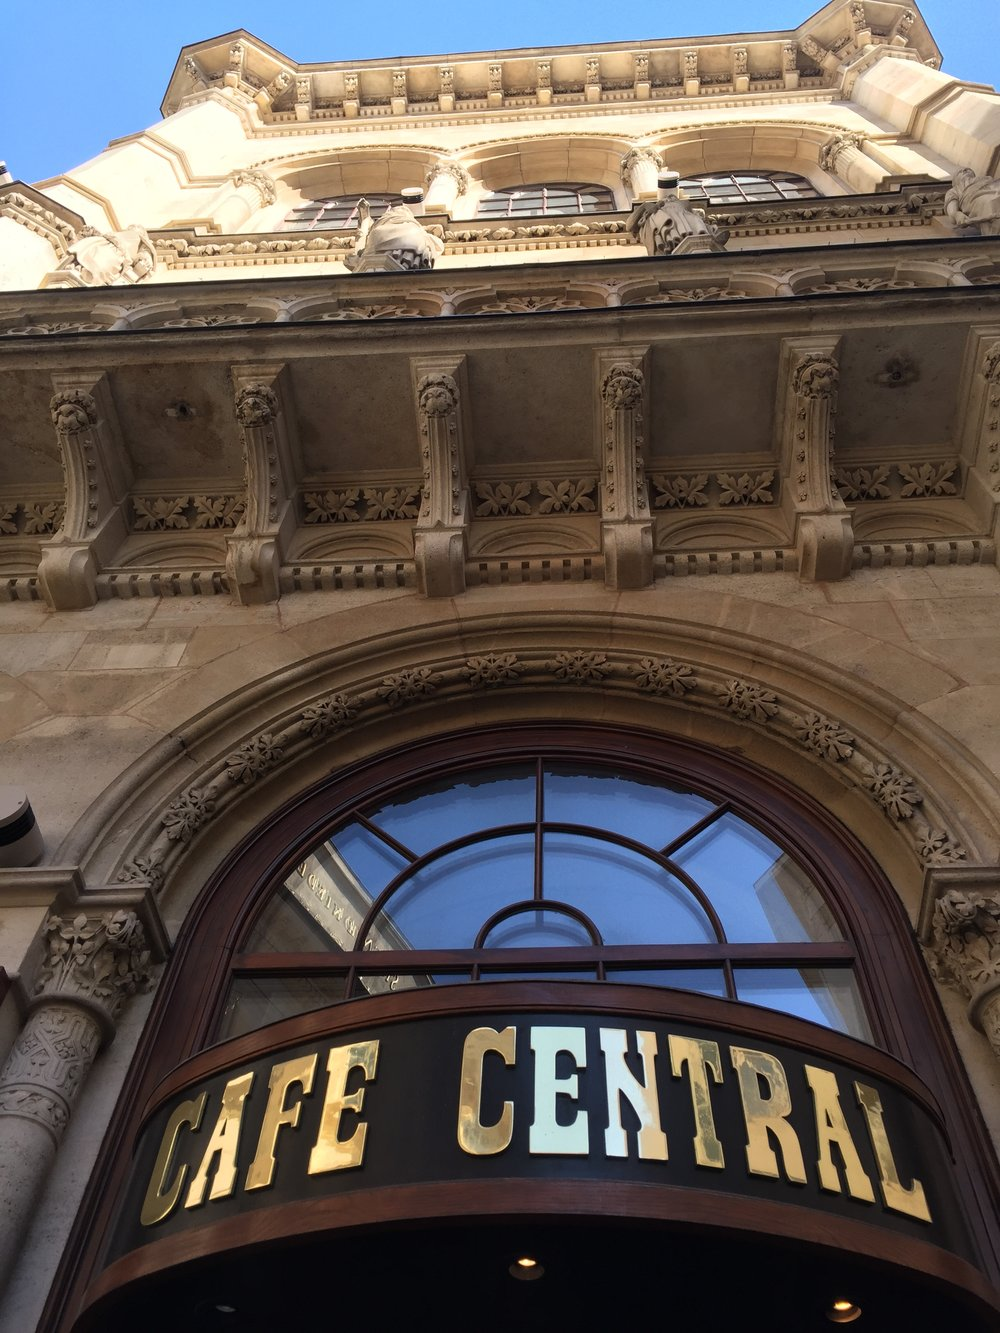 Grab a coffee at  Cafe Central . A Viennese cafe steeped in history with frequent visits from Sigmund Freud and Adolf Hitler.